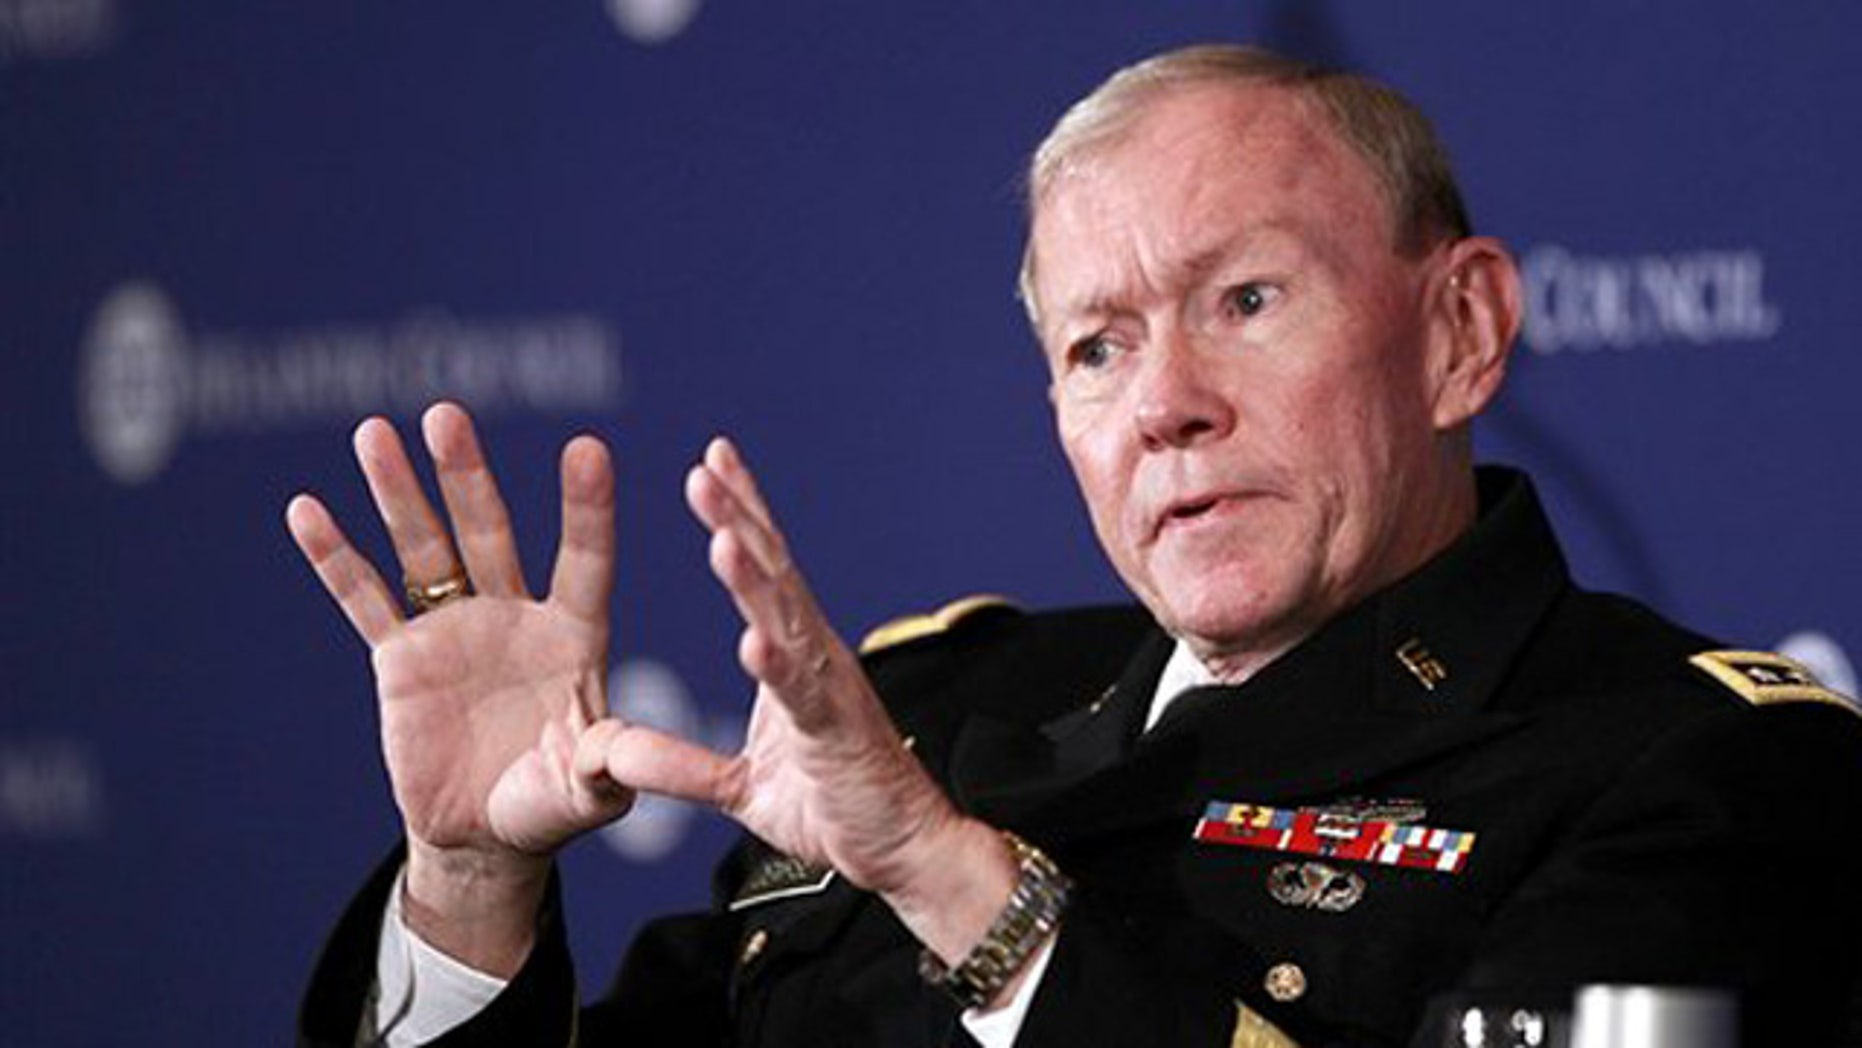 Dec. 9, 2011: Joint Chiefs Chairman Martin Dempsey speaks at the Atlantic Council in Washington.